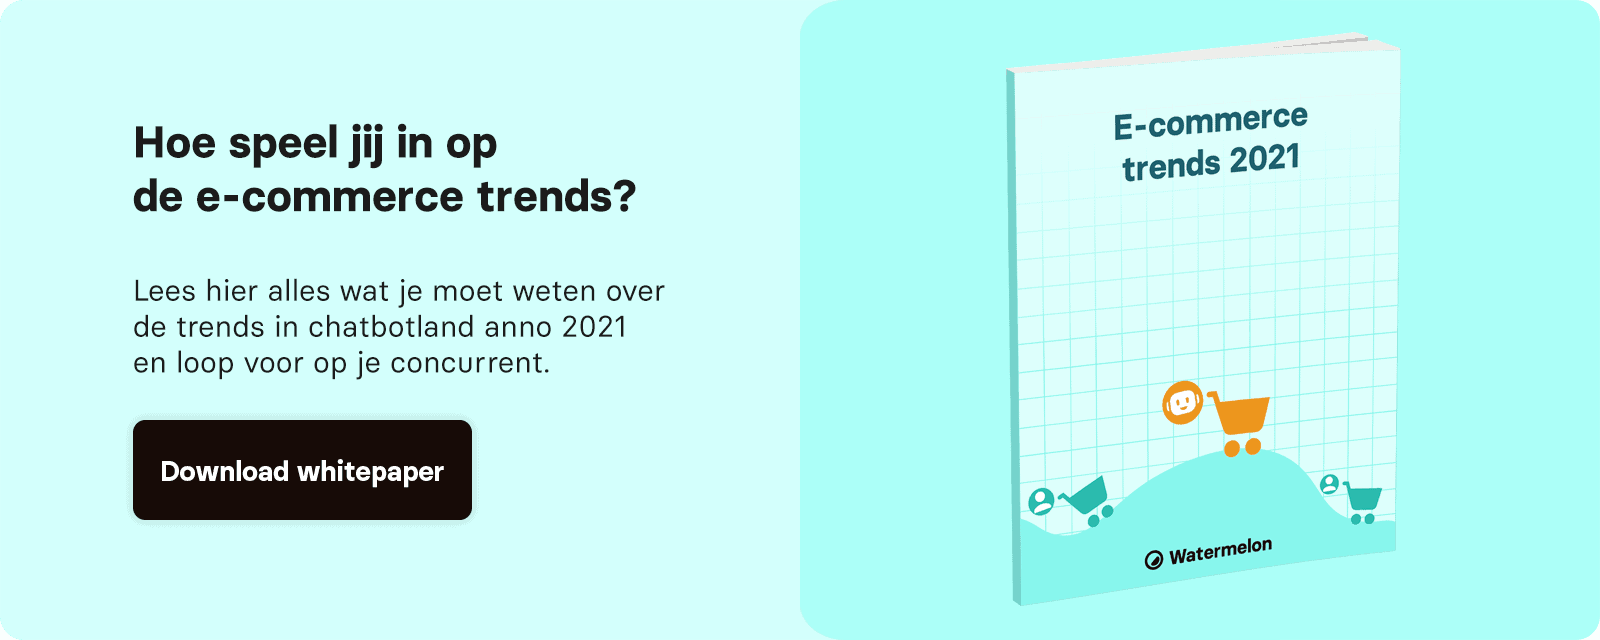 whitepaper download trends